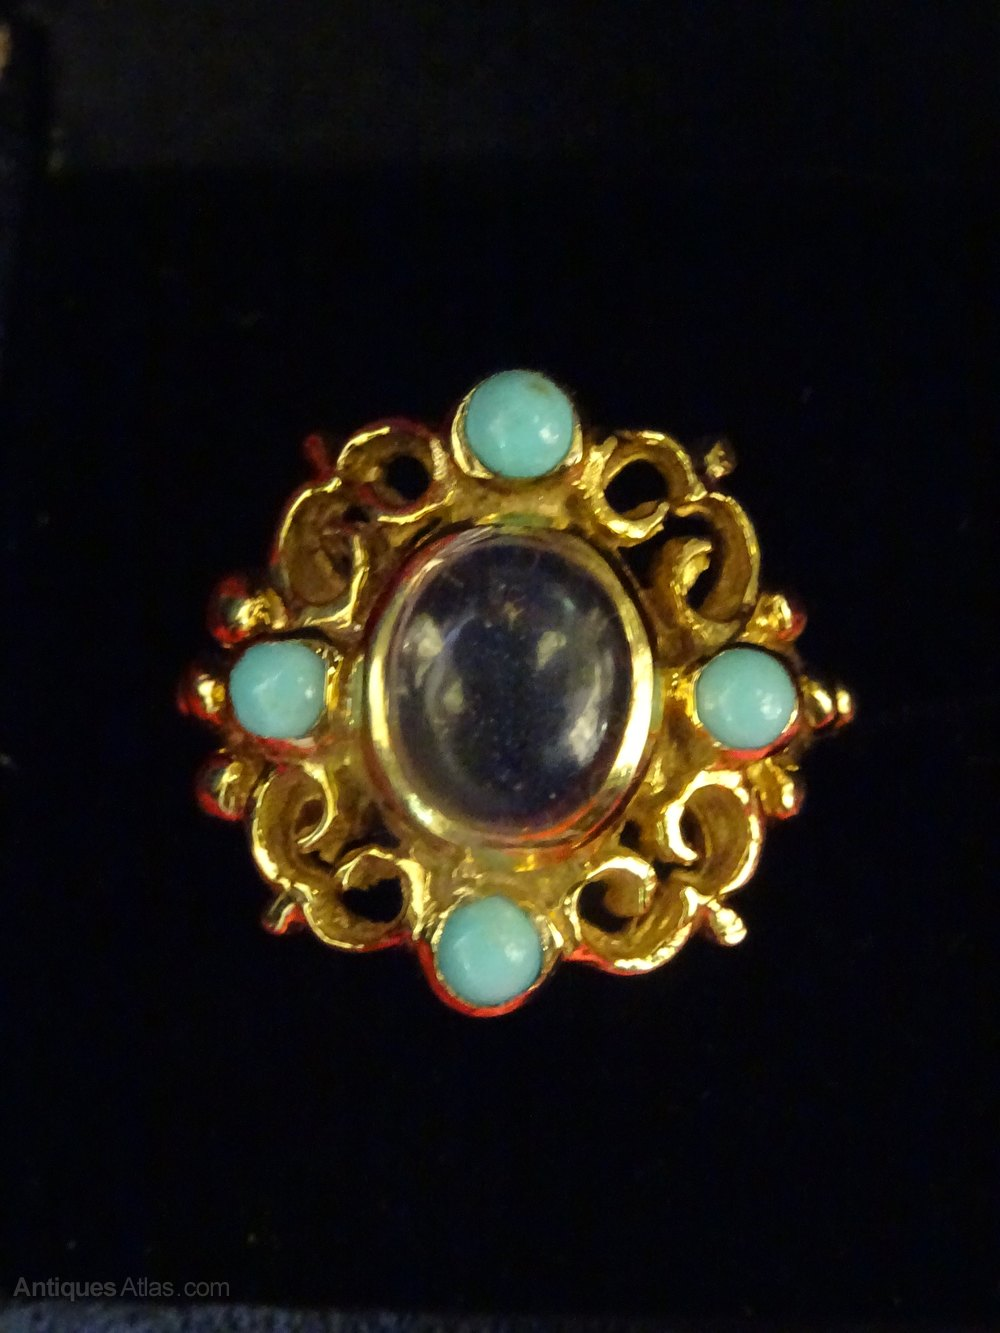 Antiques Atlas Vintage 9ct Gold Moonstone Amp Turquoise Ring